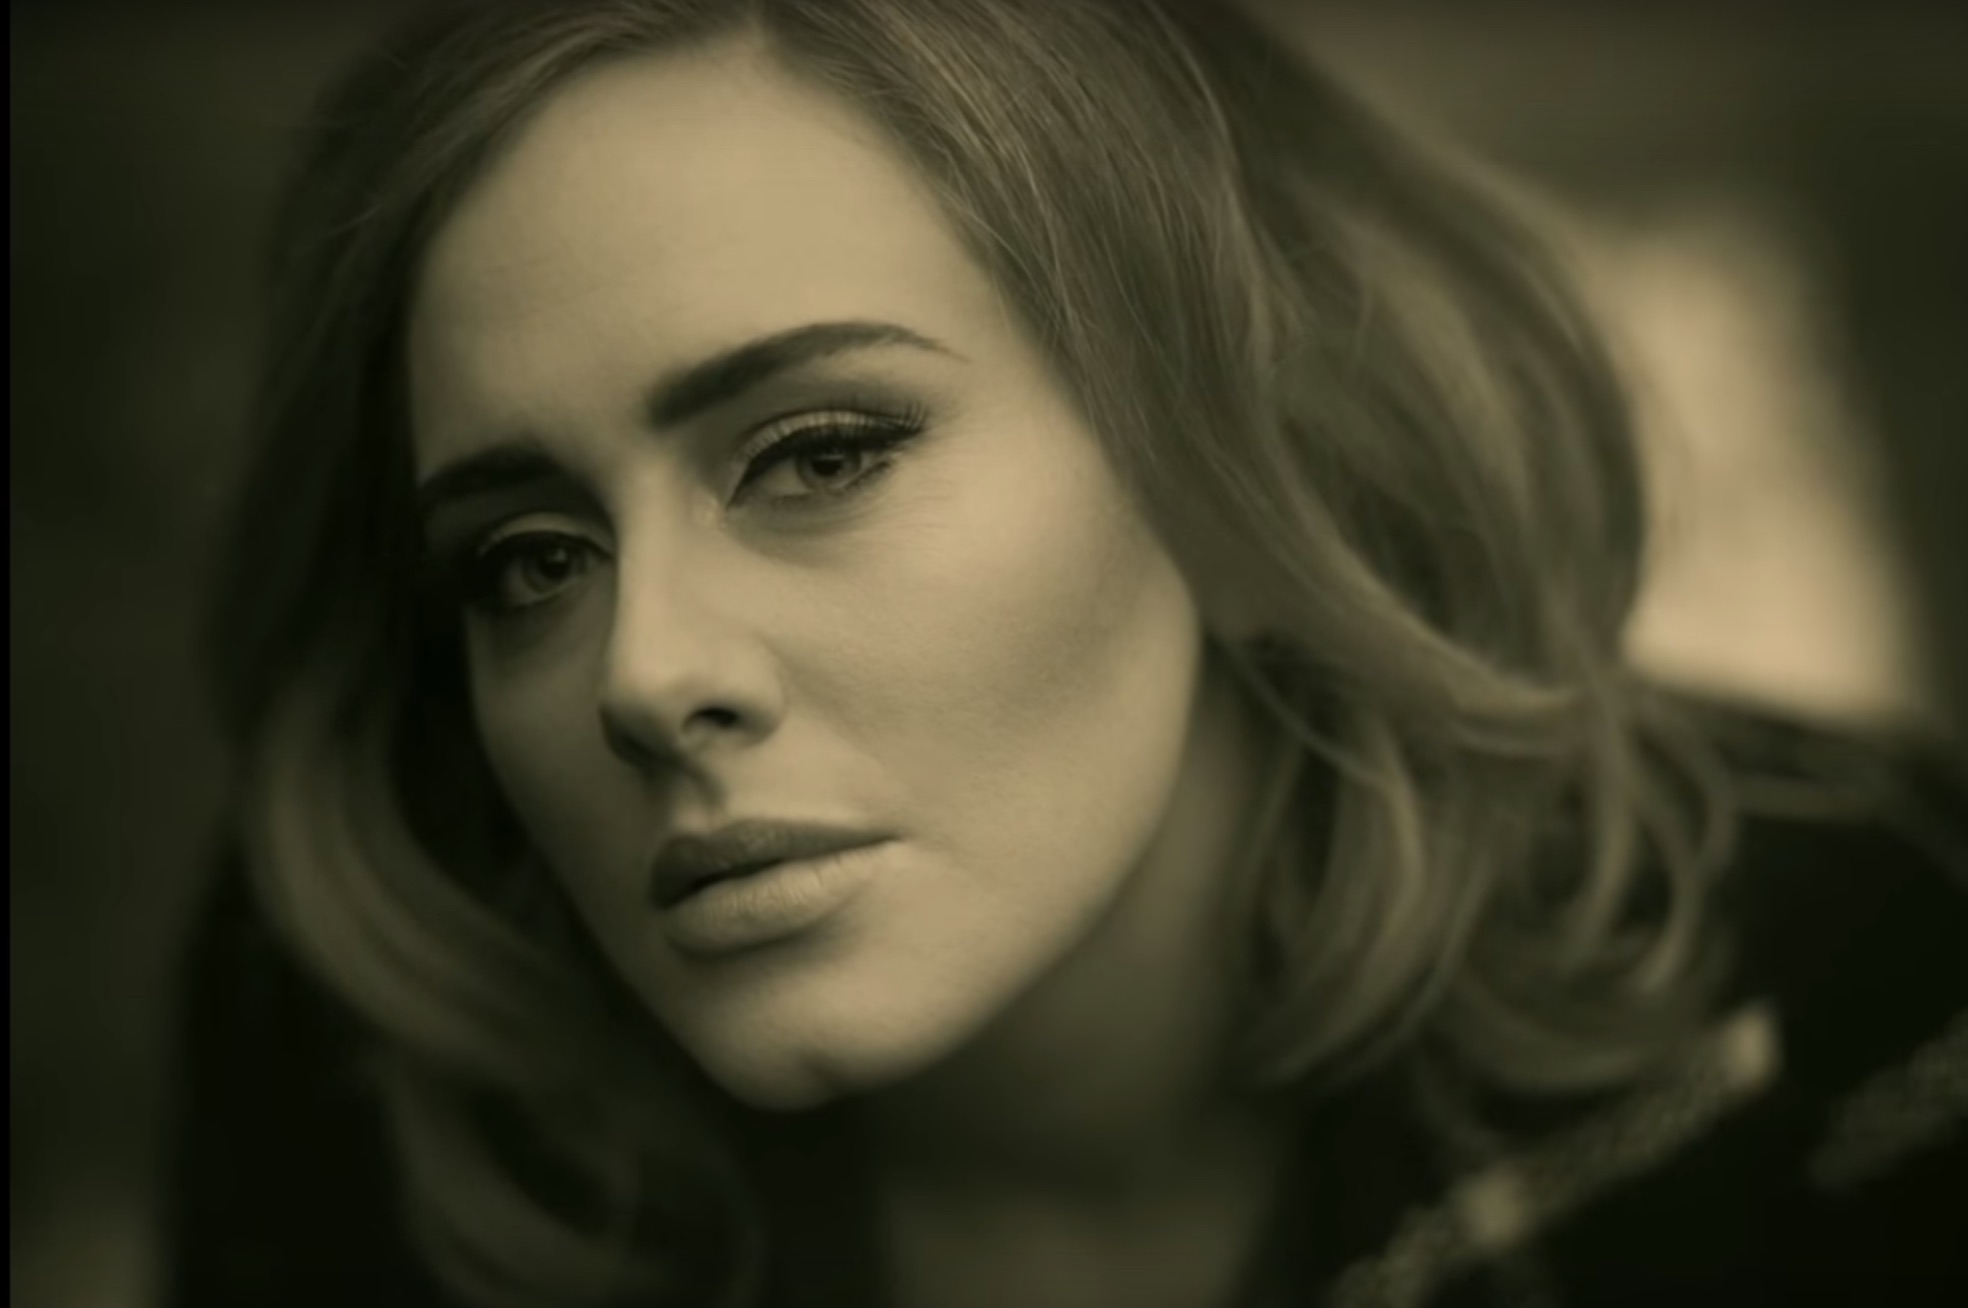 Here's why our girl Adele has turned down millions of dollars in endorsement deals